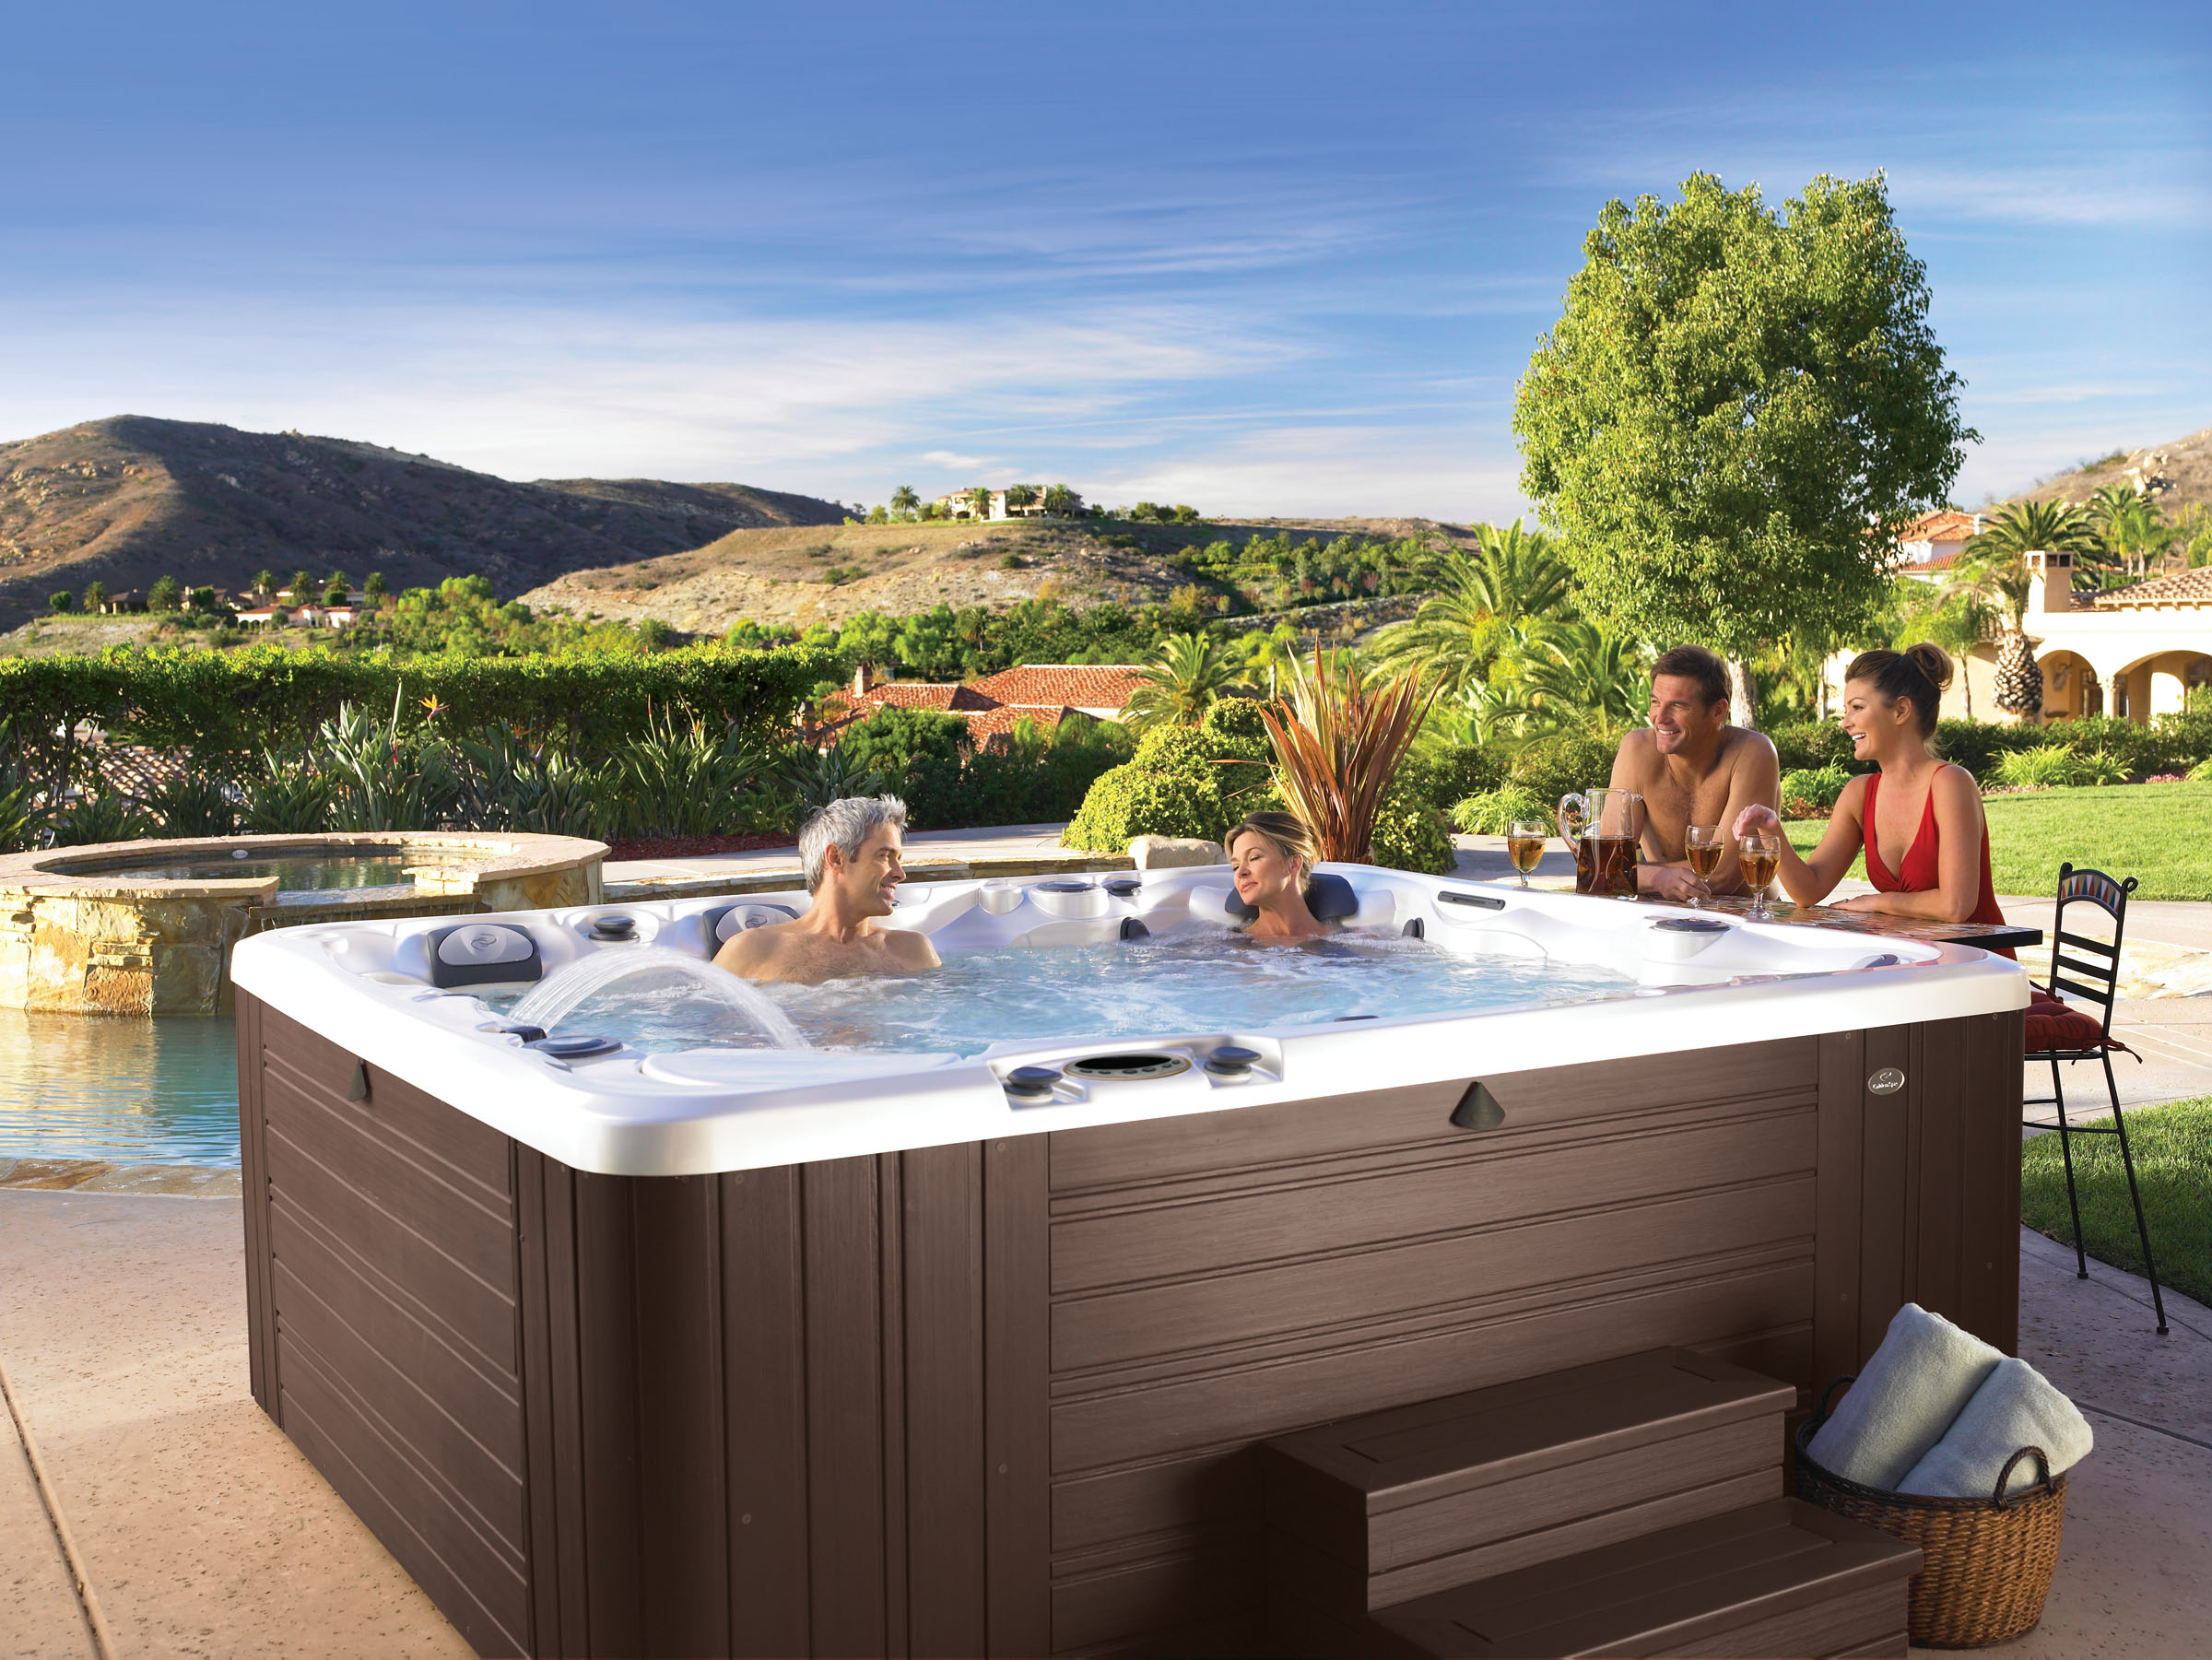 Where to buy a hot tub in Dallas? Shopper\'s Guide